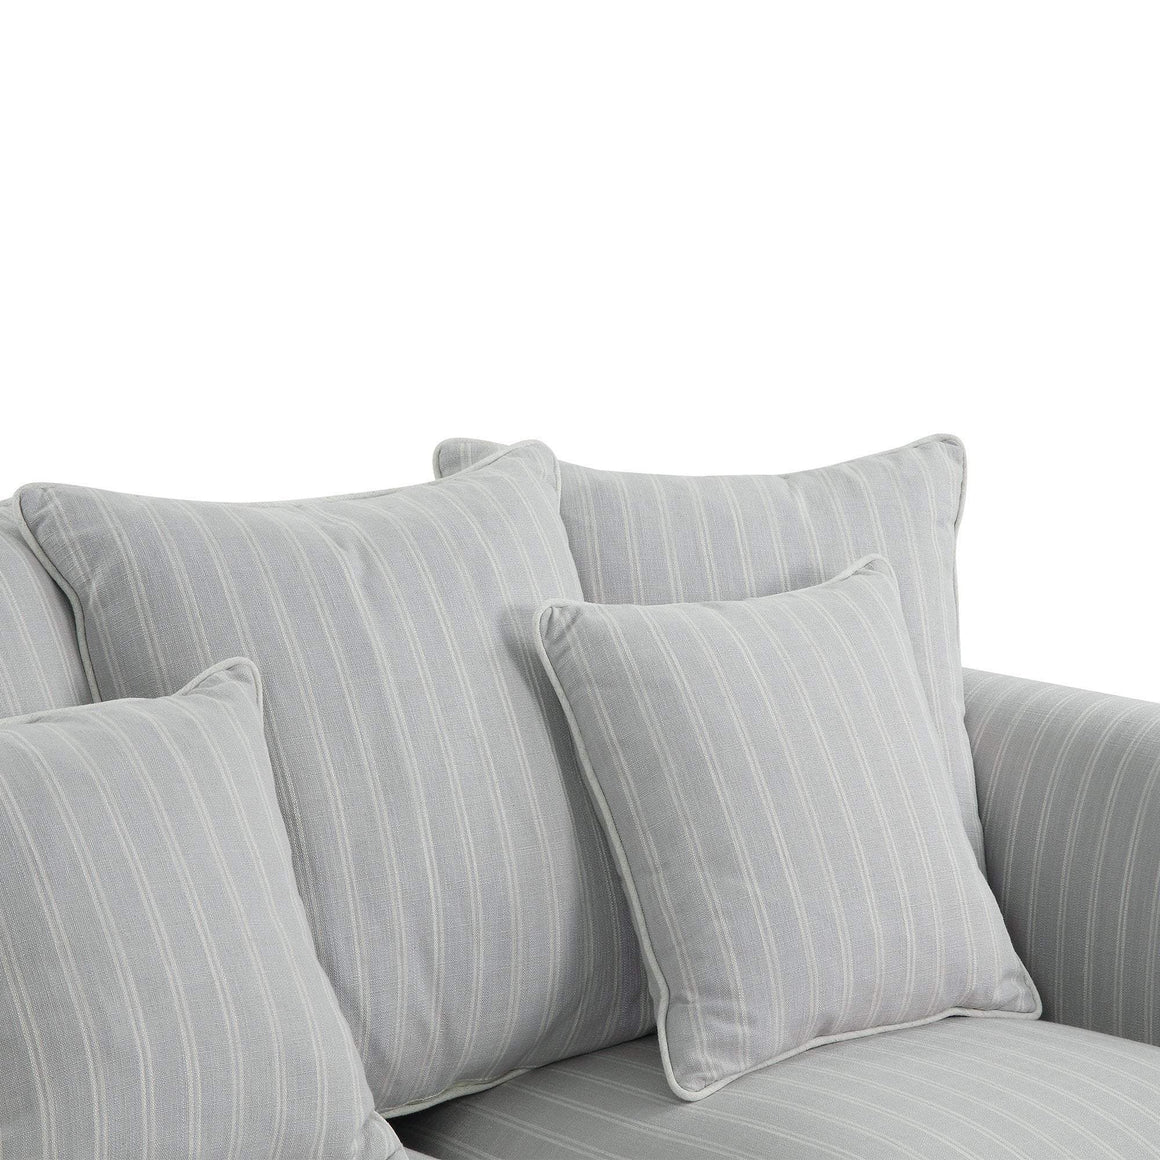 AVALON CLOUD STRIPE 3 SEAT SOFA COVER